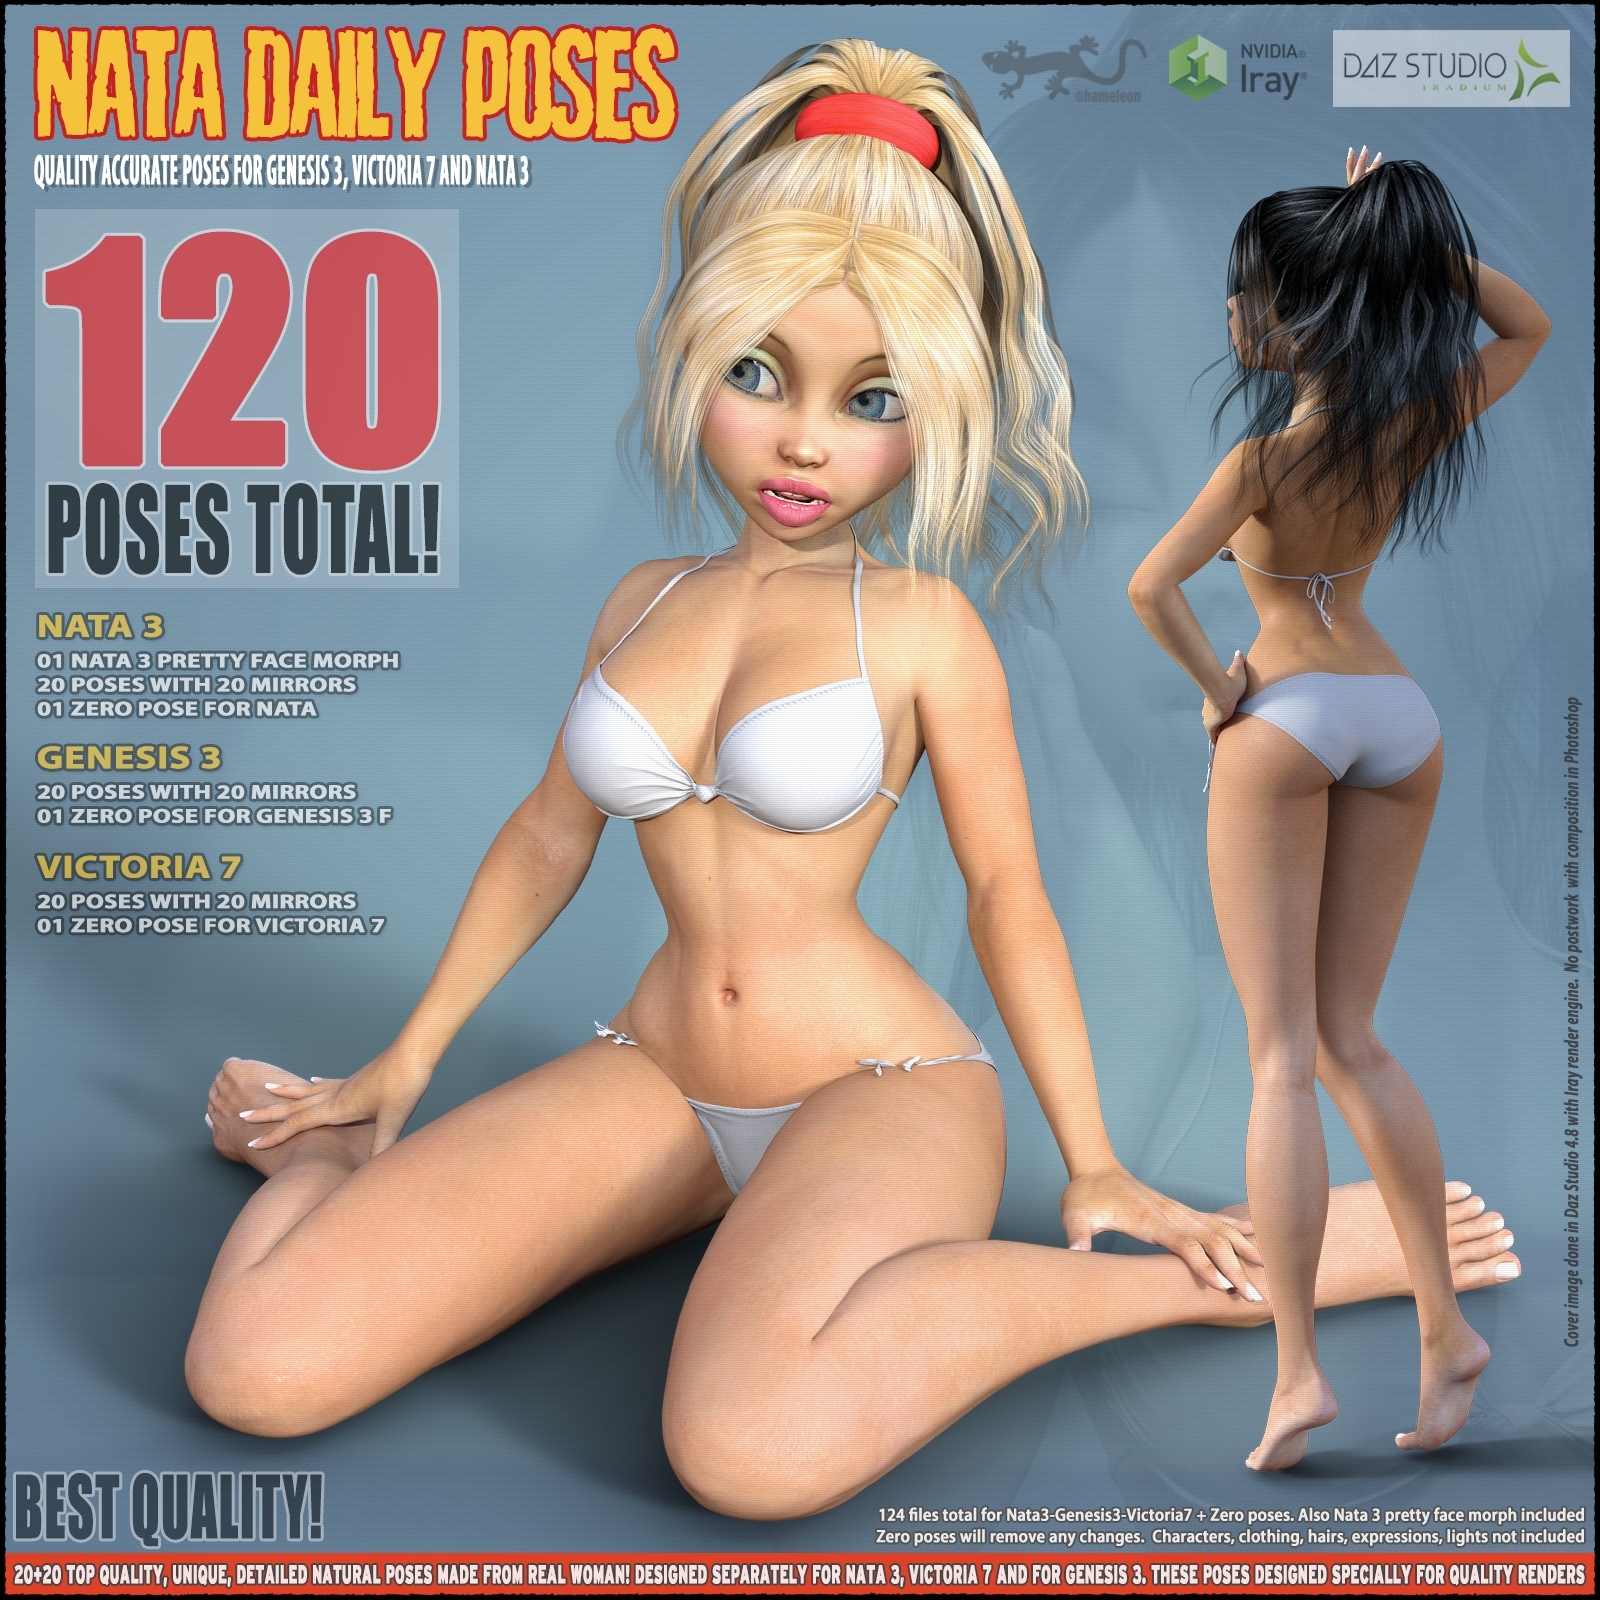 Daily Poses for Nata3, G3, V7